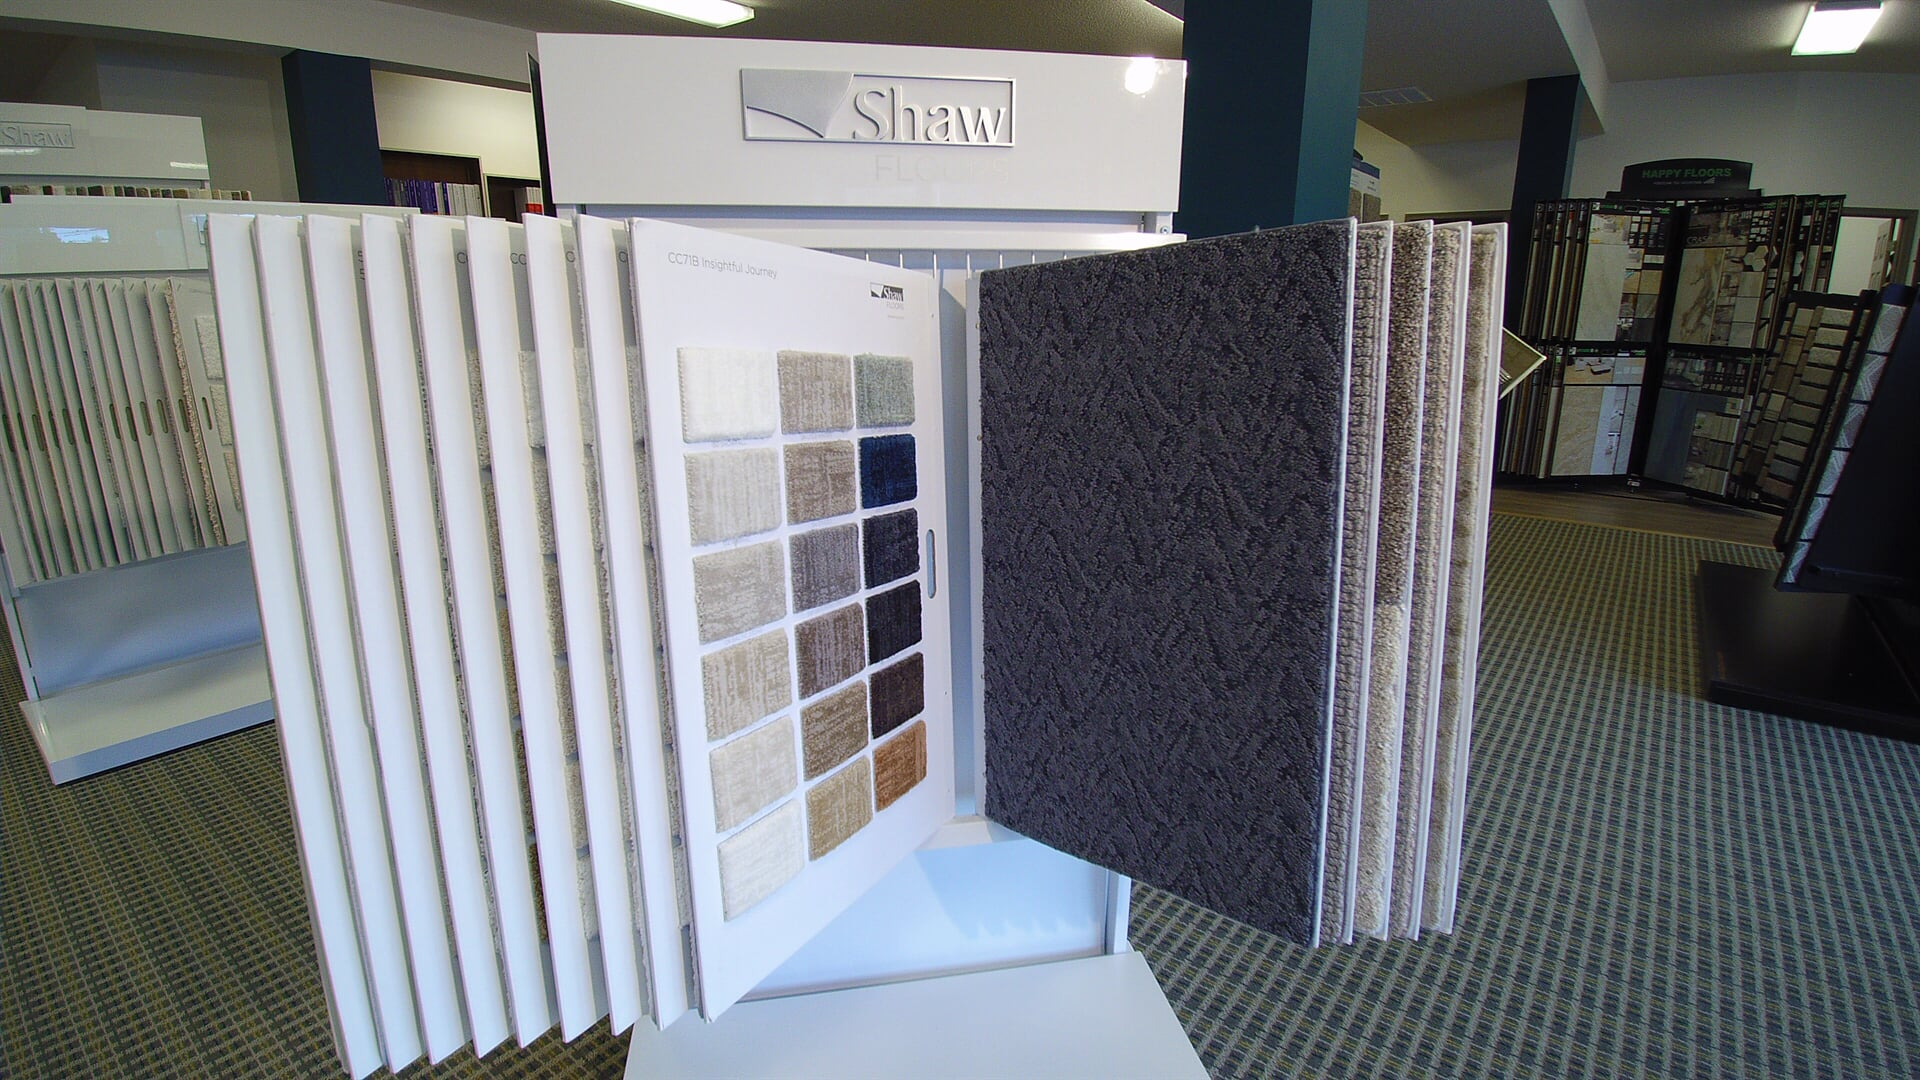 Shaw carpet in Franklin, WV from Eagle Carpet, Inc.